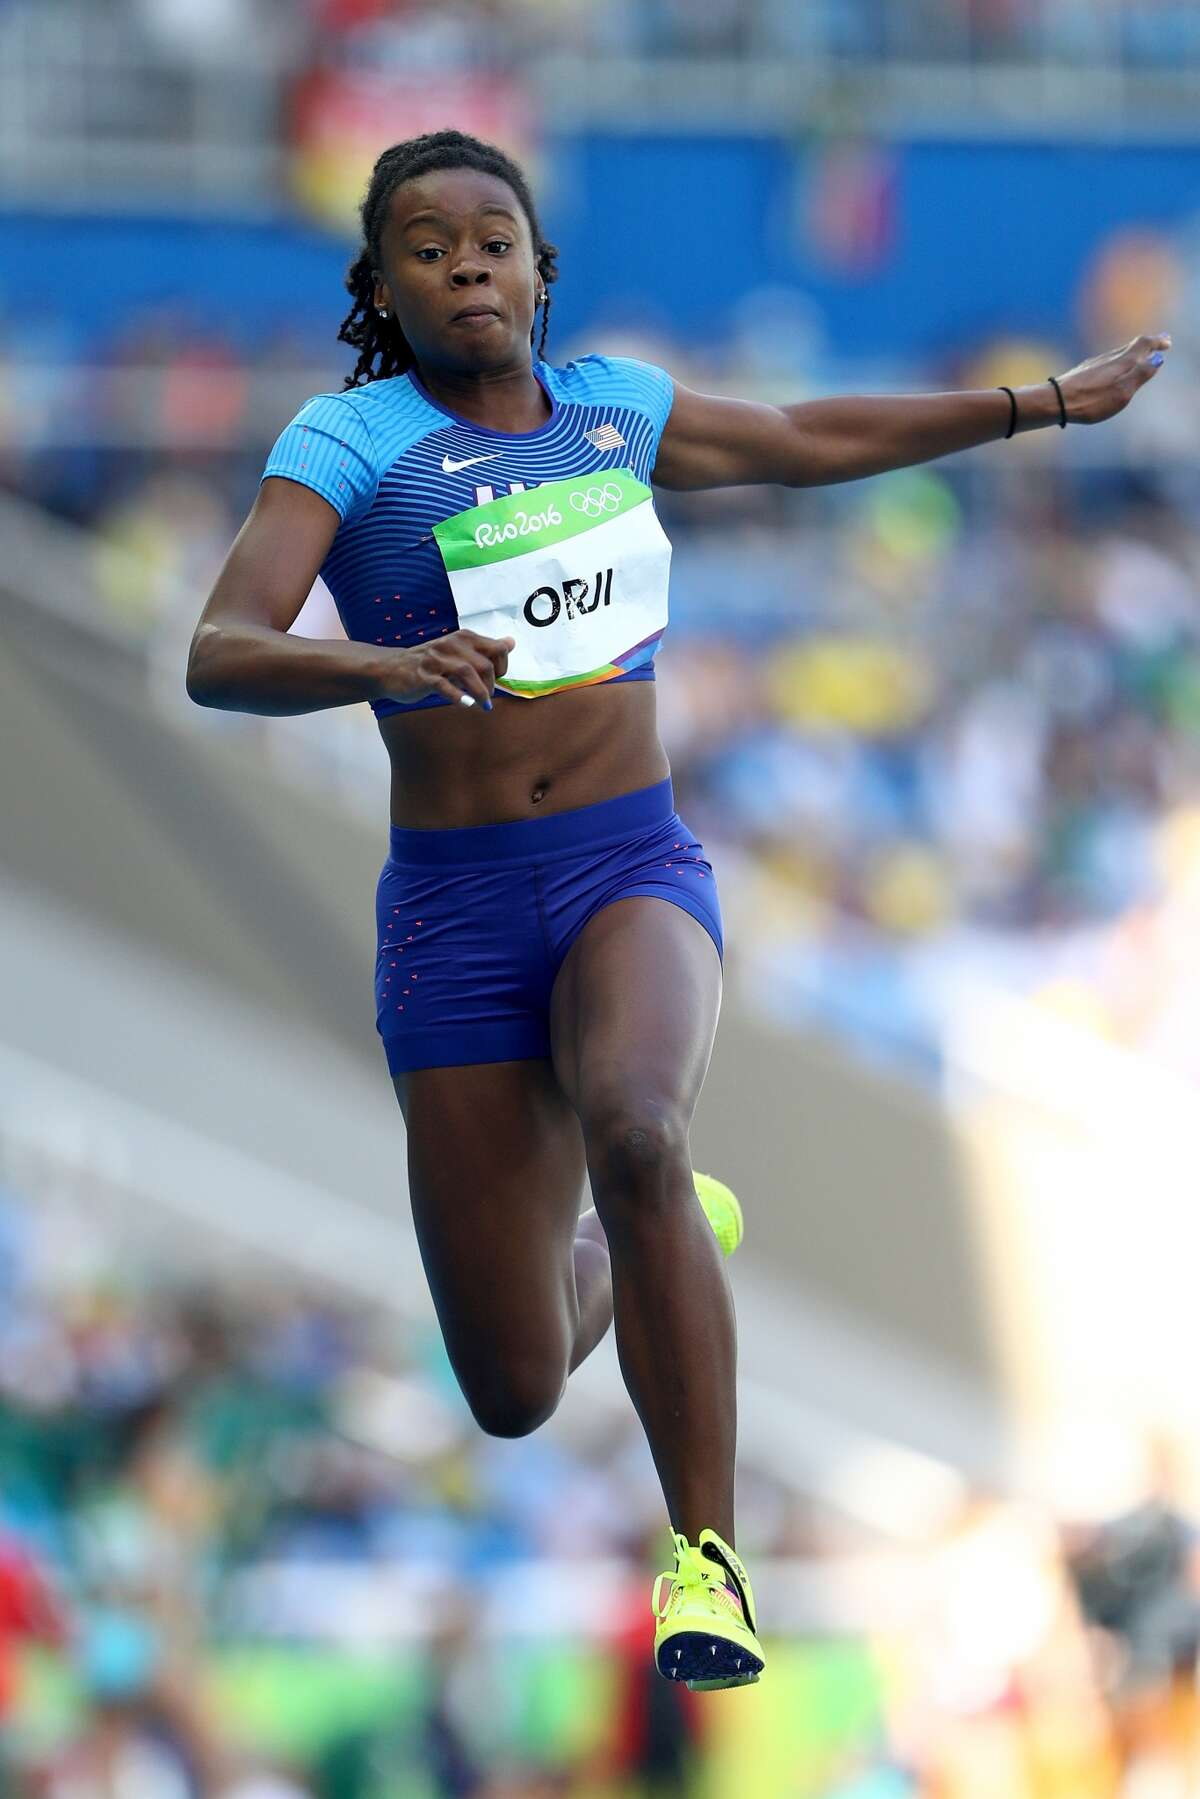 Keturah Orji won gold in the women's triple jump Sunday, Aug. 13, 2016.